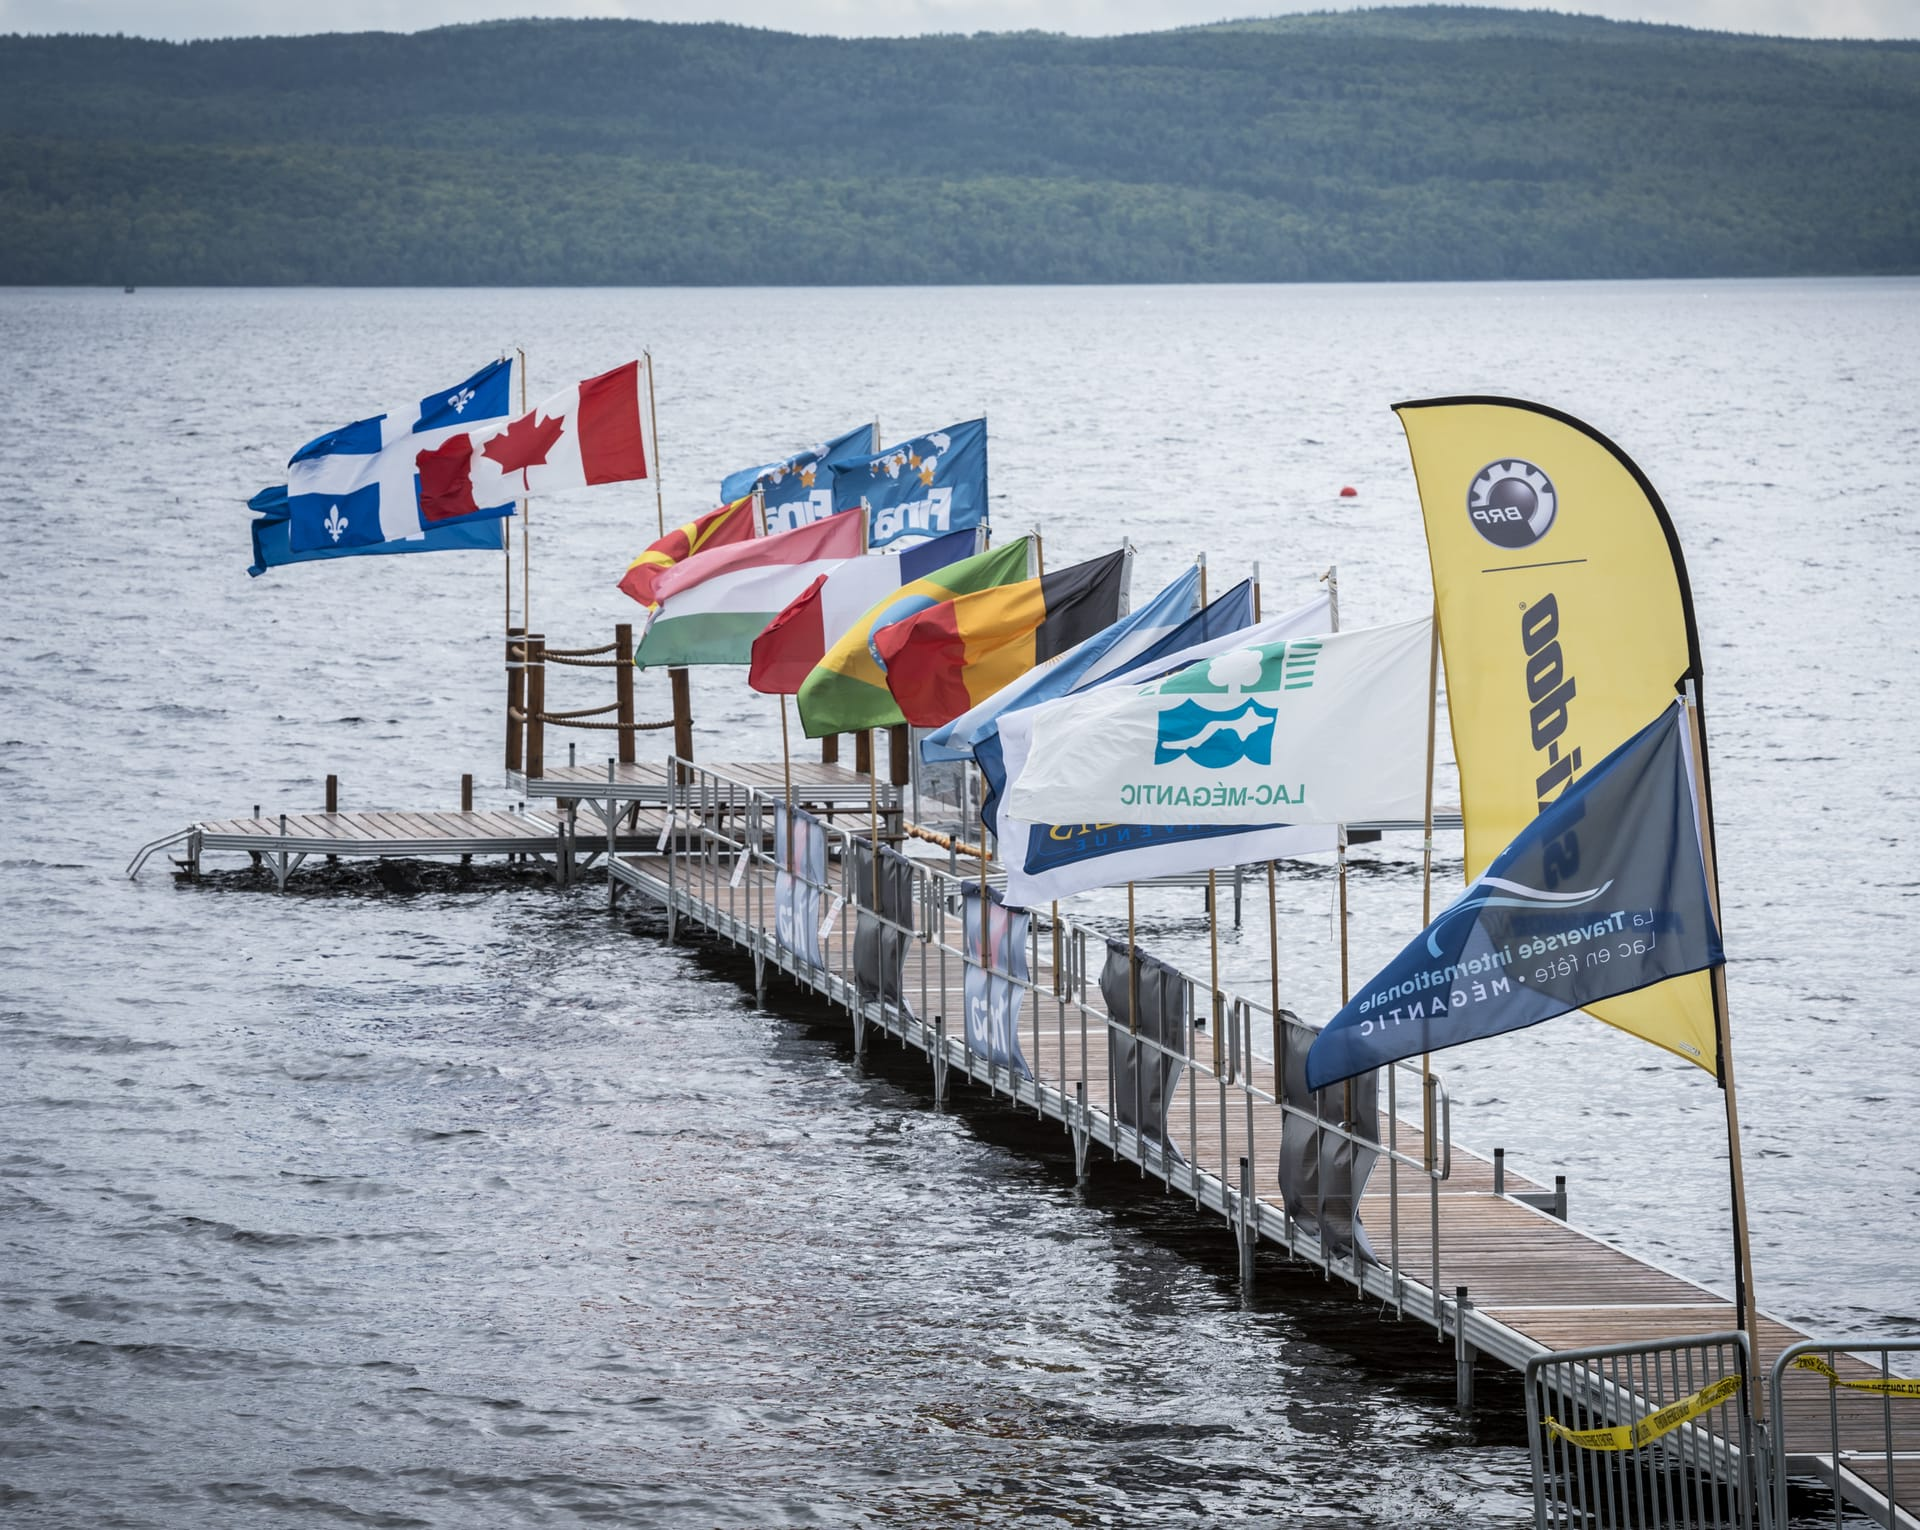 The International crossing of lake Mégantic